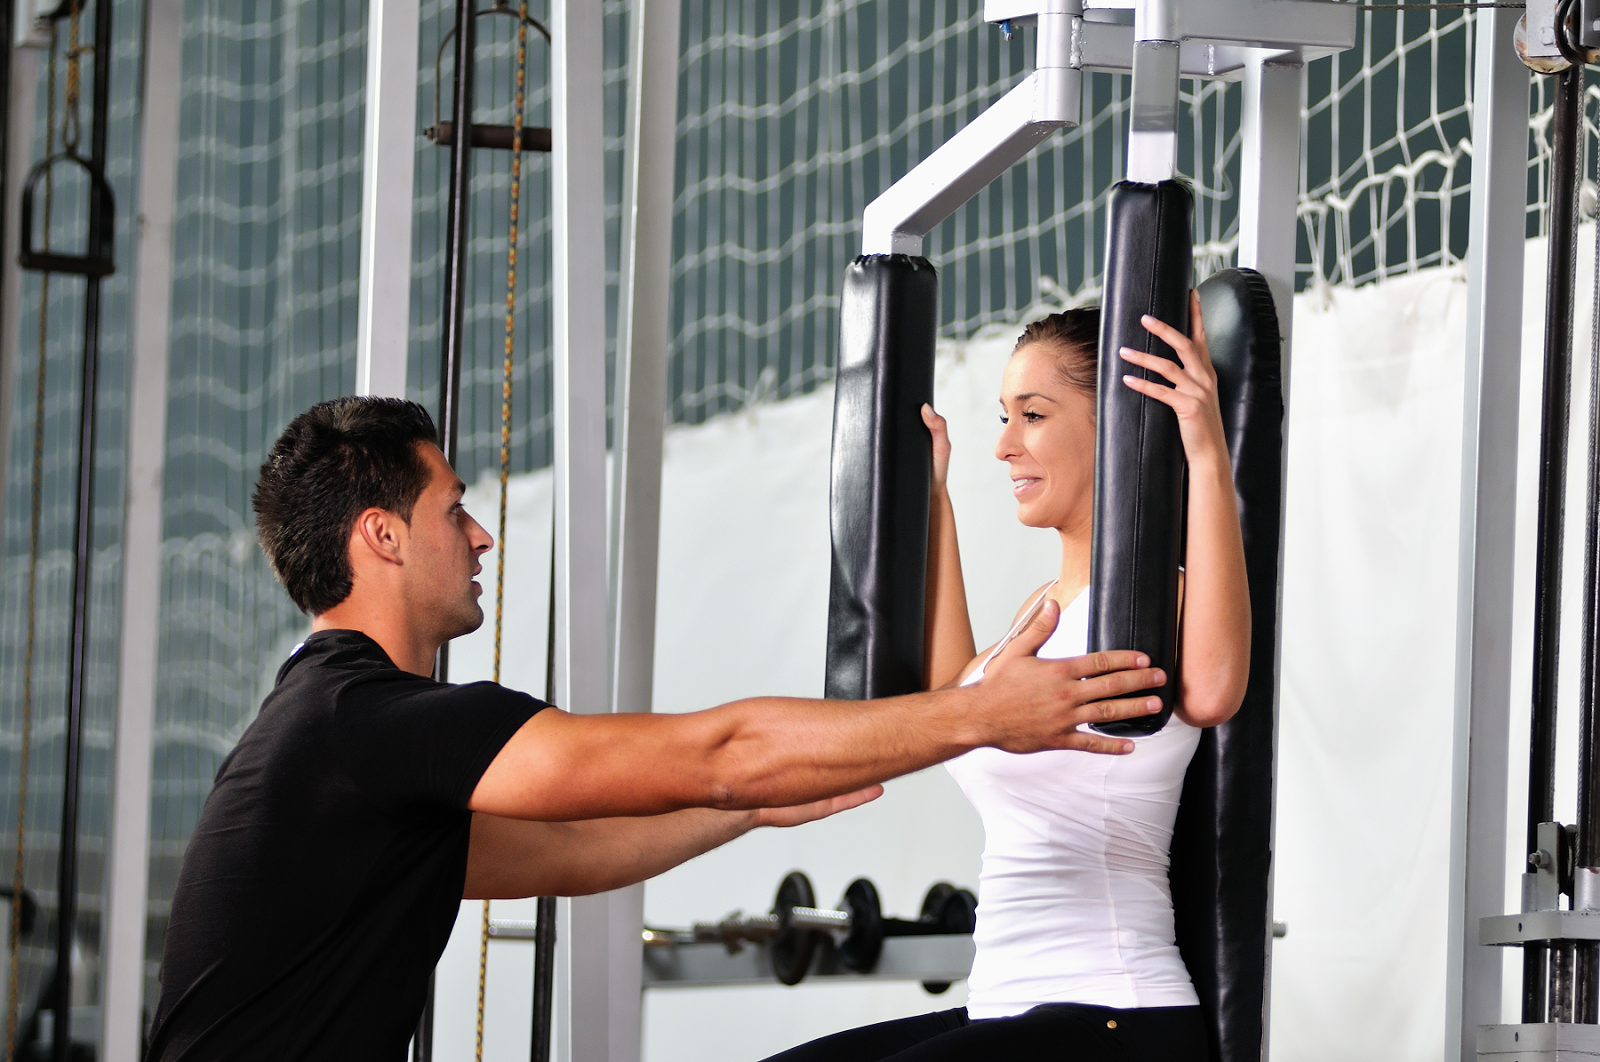 How Much Do Personal Trainers Earn?